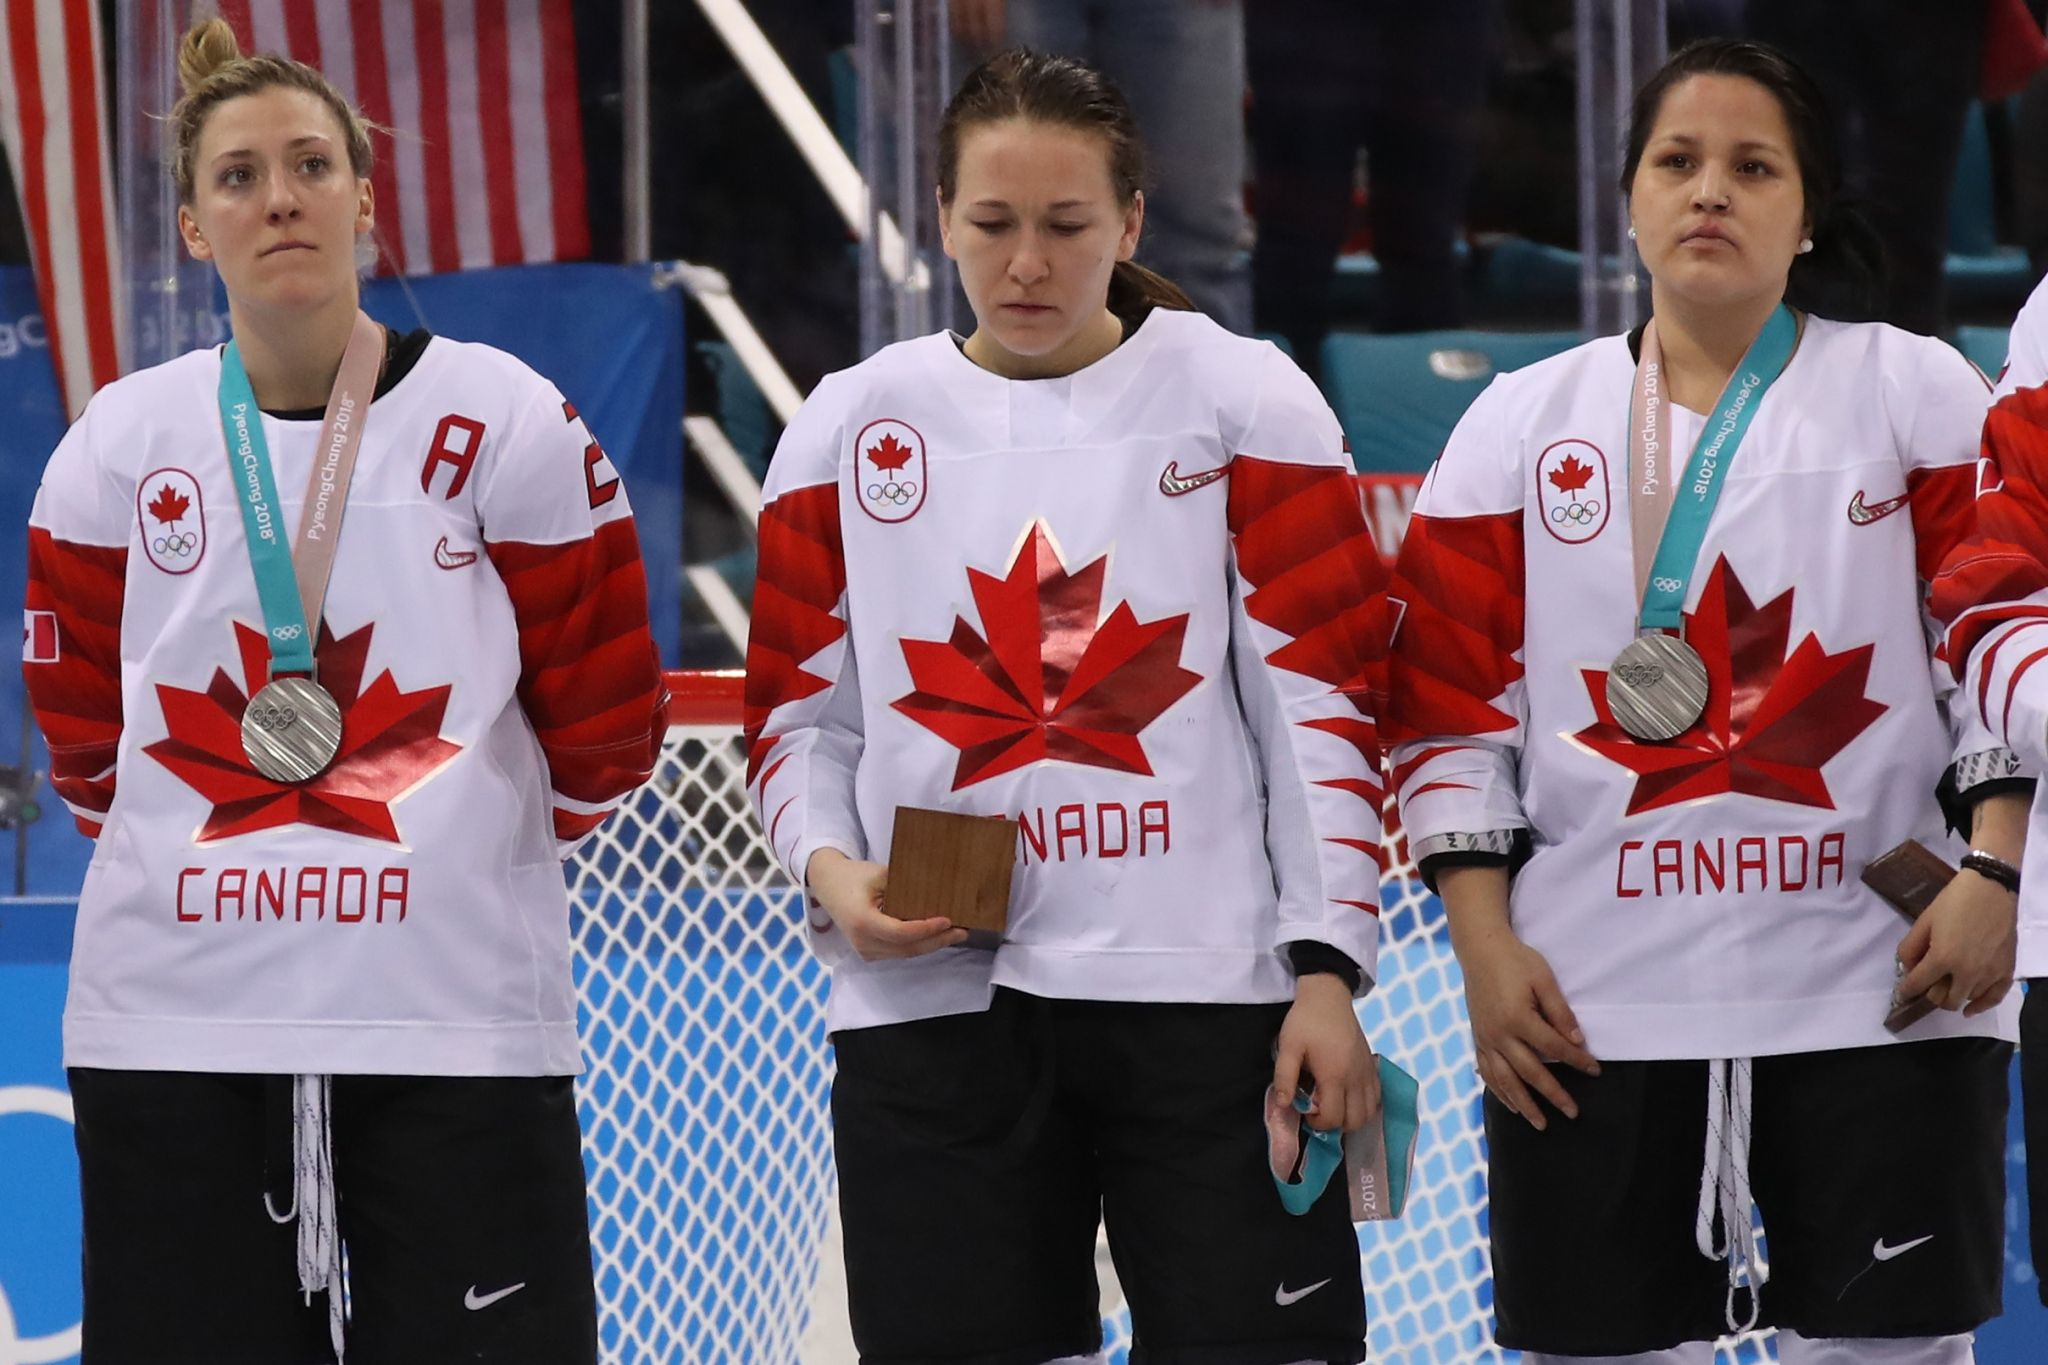 Canadian hockey player reportedly ordered to wear silver medal she angrily removed on ice